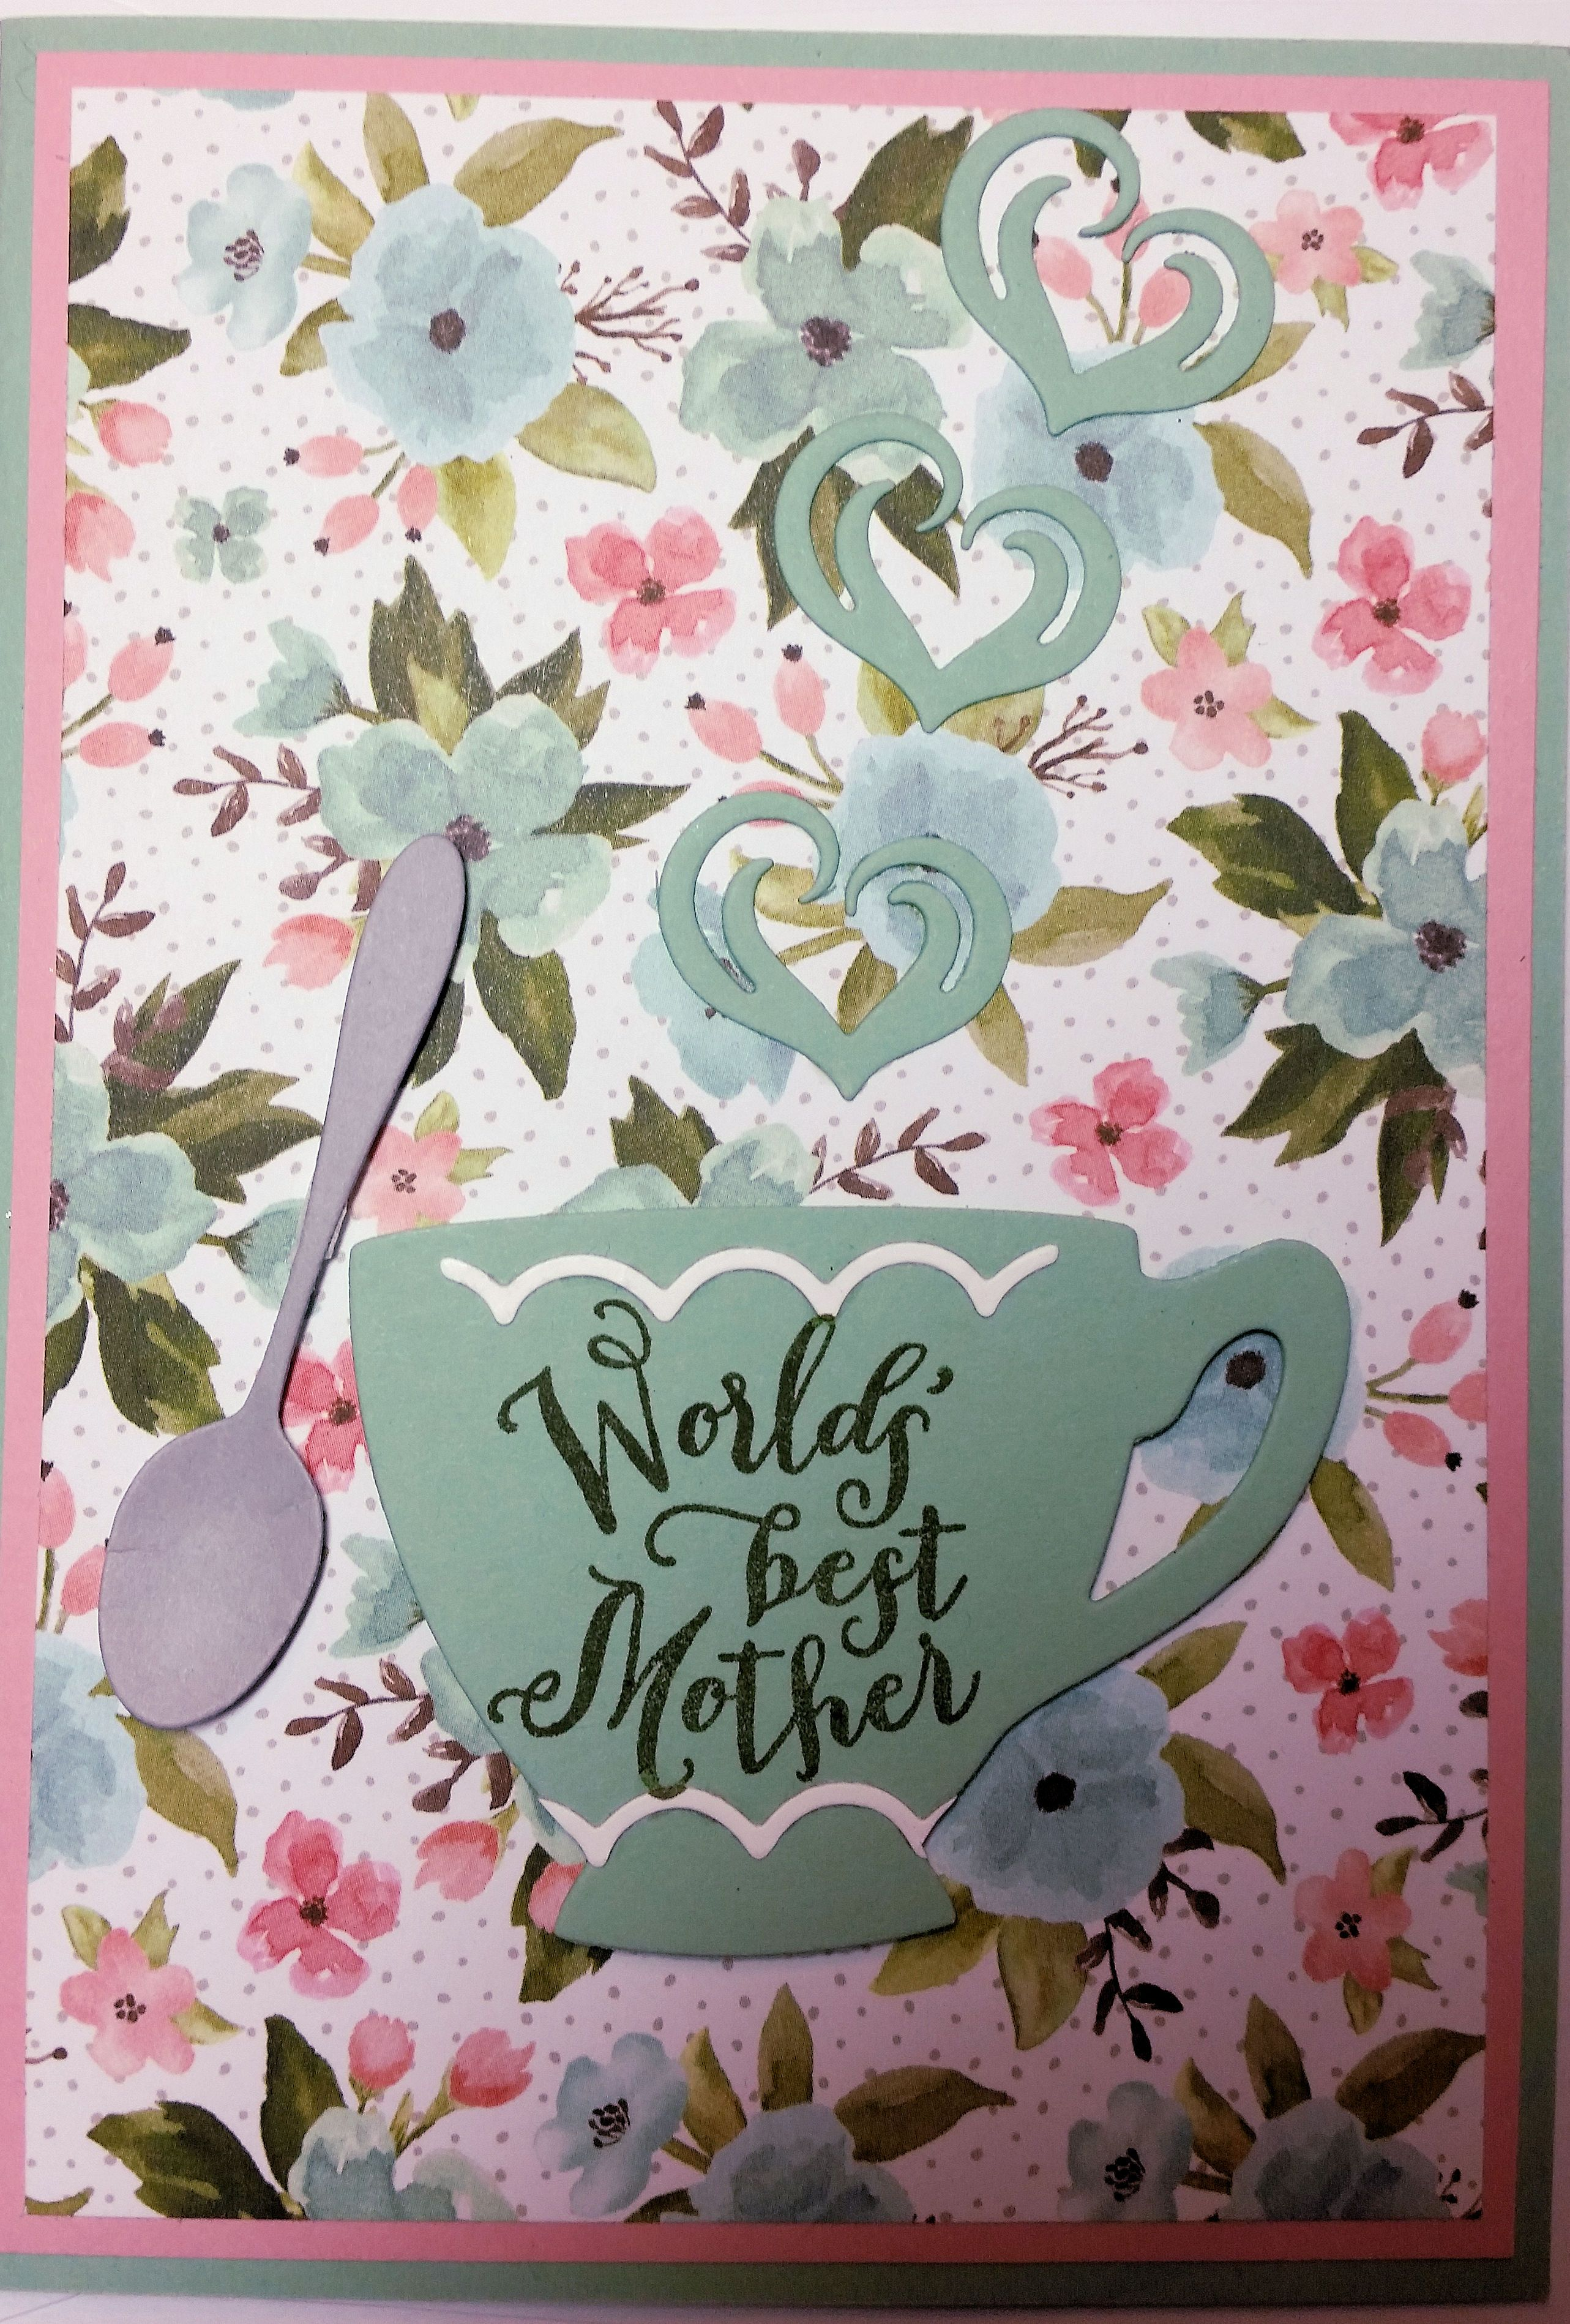 Mother's Day Card - made using Stampin' Up! products including A Nice Cuppa Stamp Set, Birthday Bouquet DSP and Cups & Kettles Framelits.